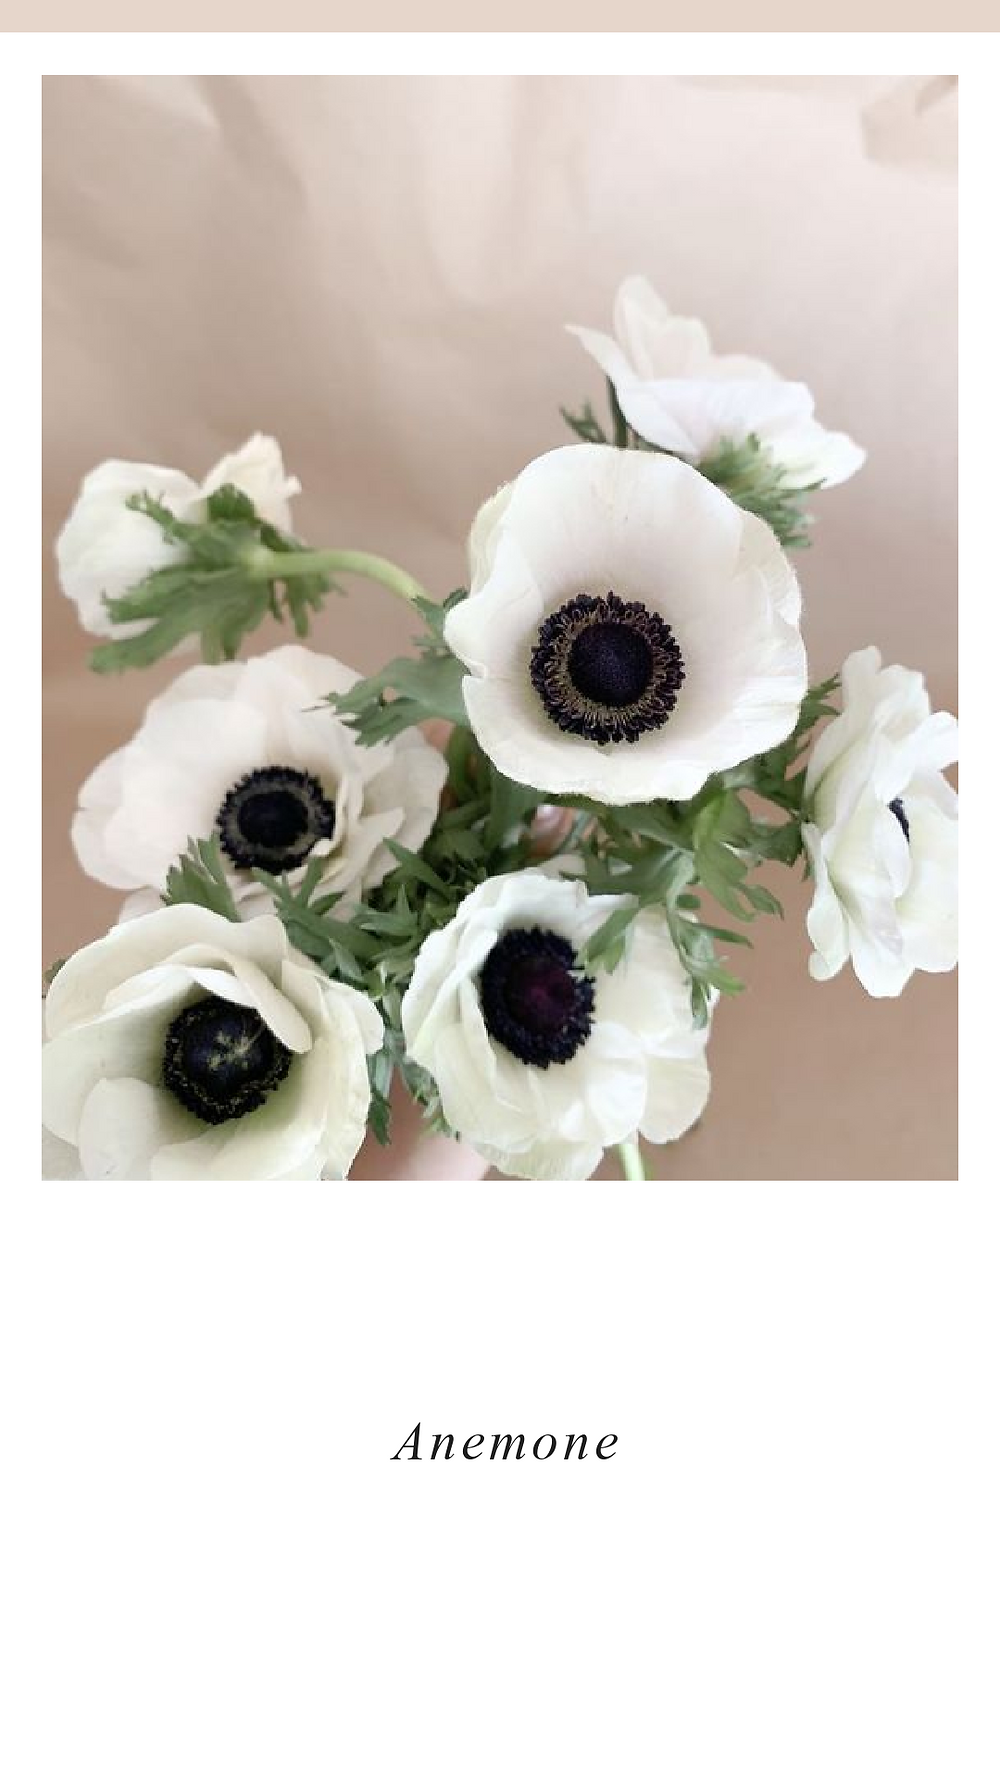 White and black Anemone flowers for valentines day